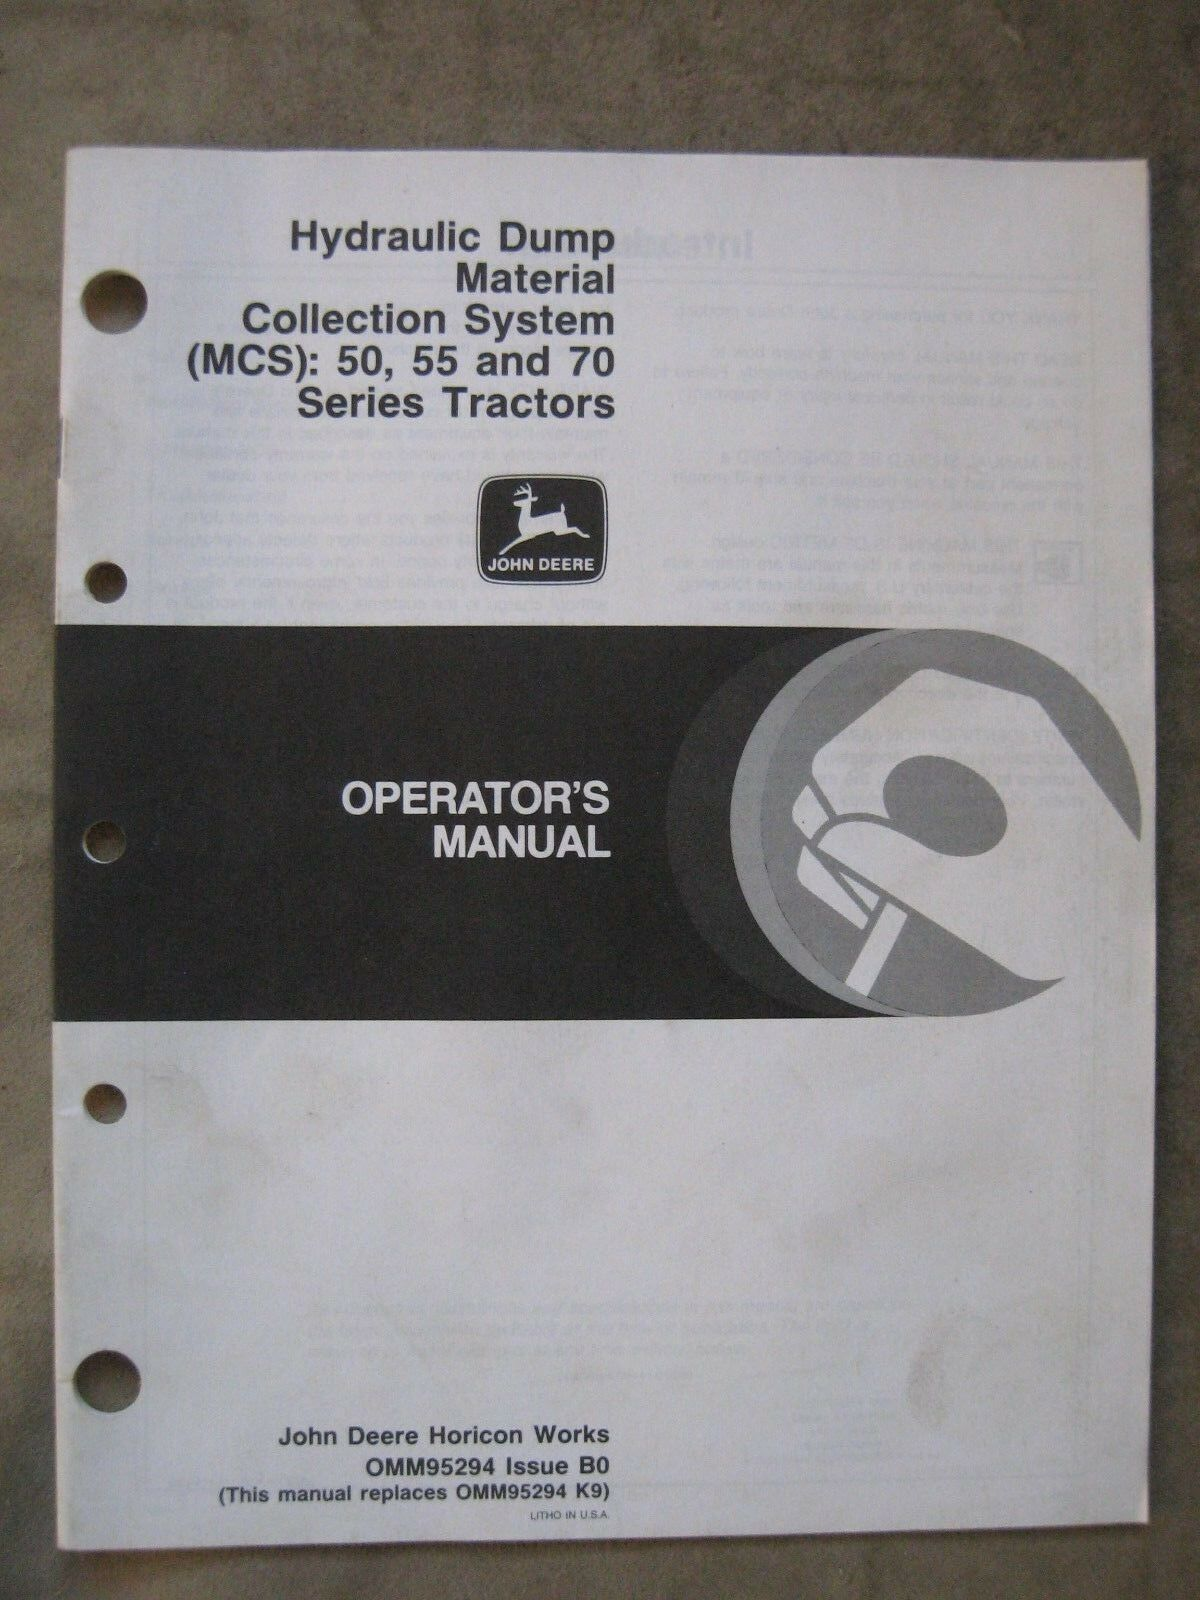 John Deere MCS Dump Bagger tractor operators manual 650 750 655 755 855 1  of 1Only 1 available ...